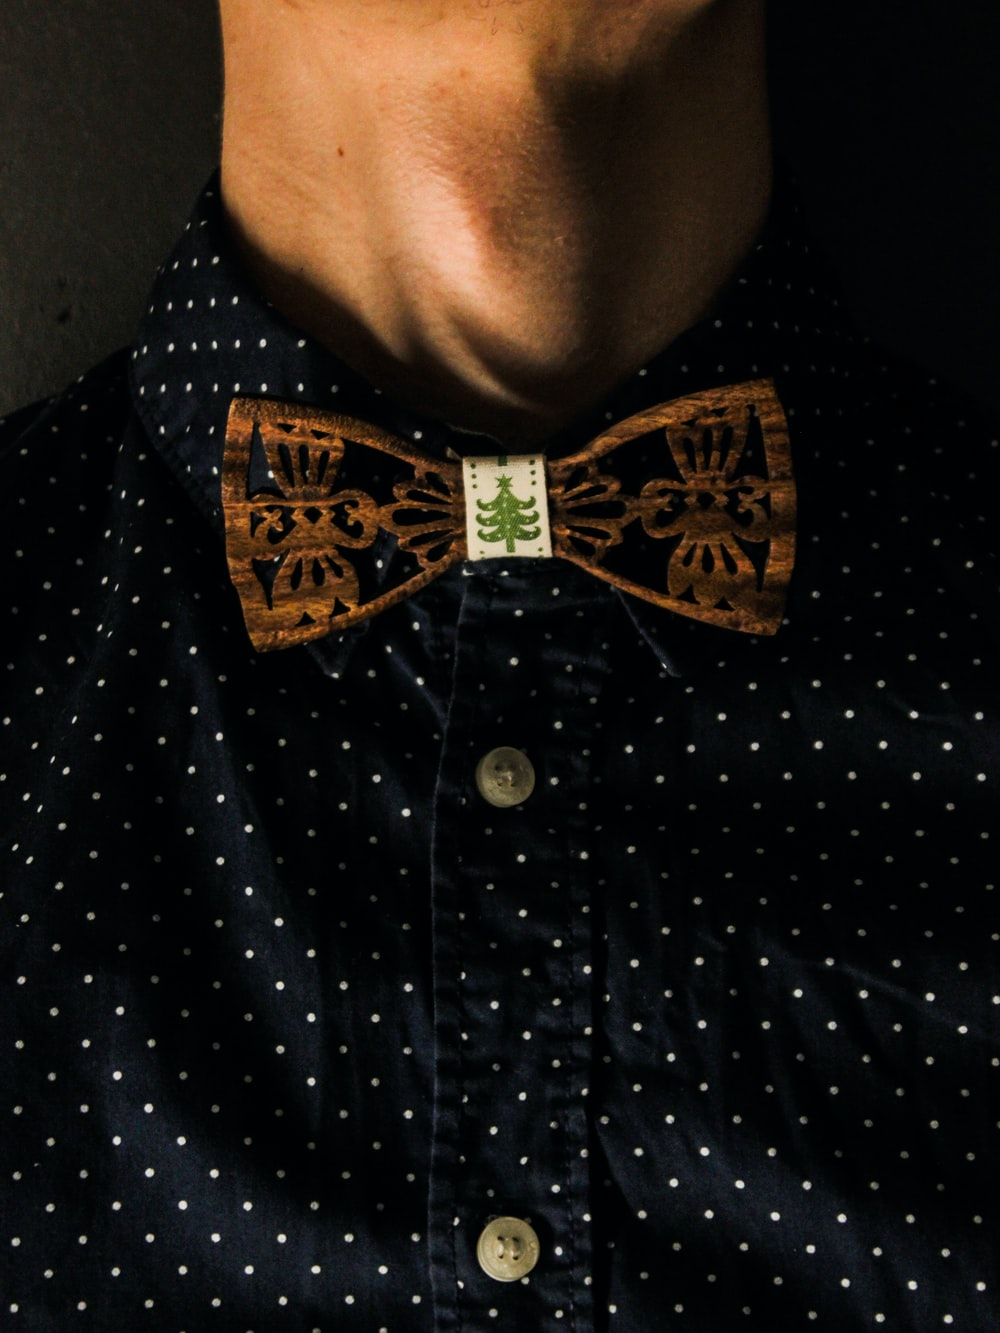 man in black and white polka dot shirt with brown bow tie